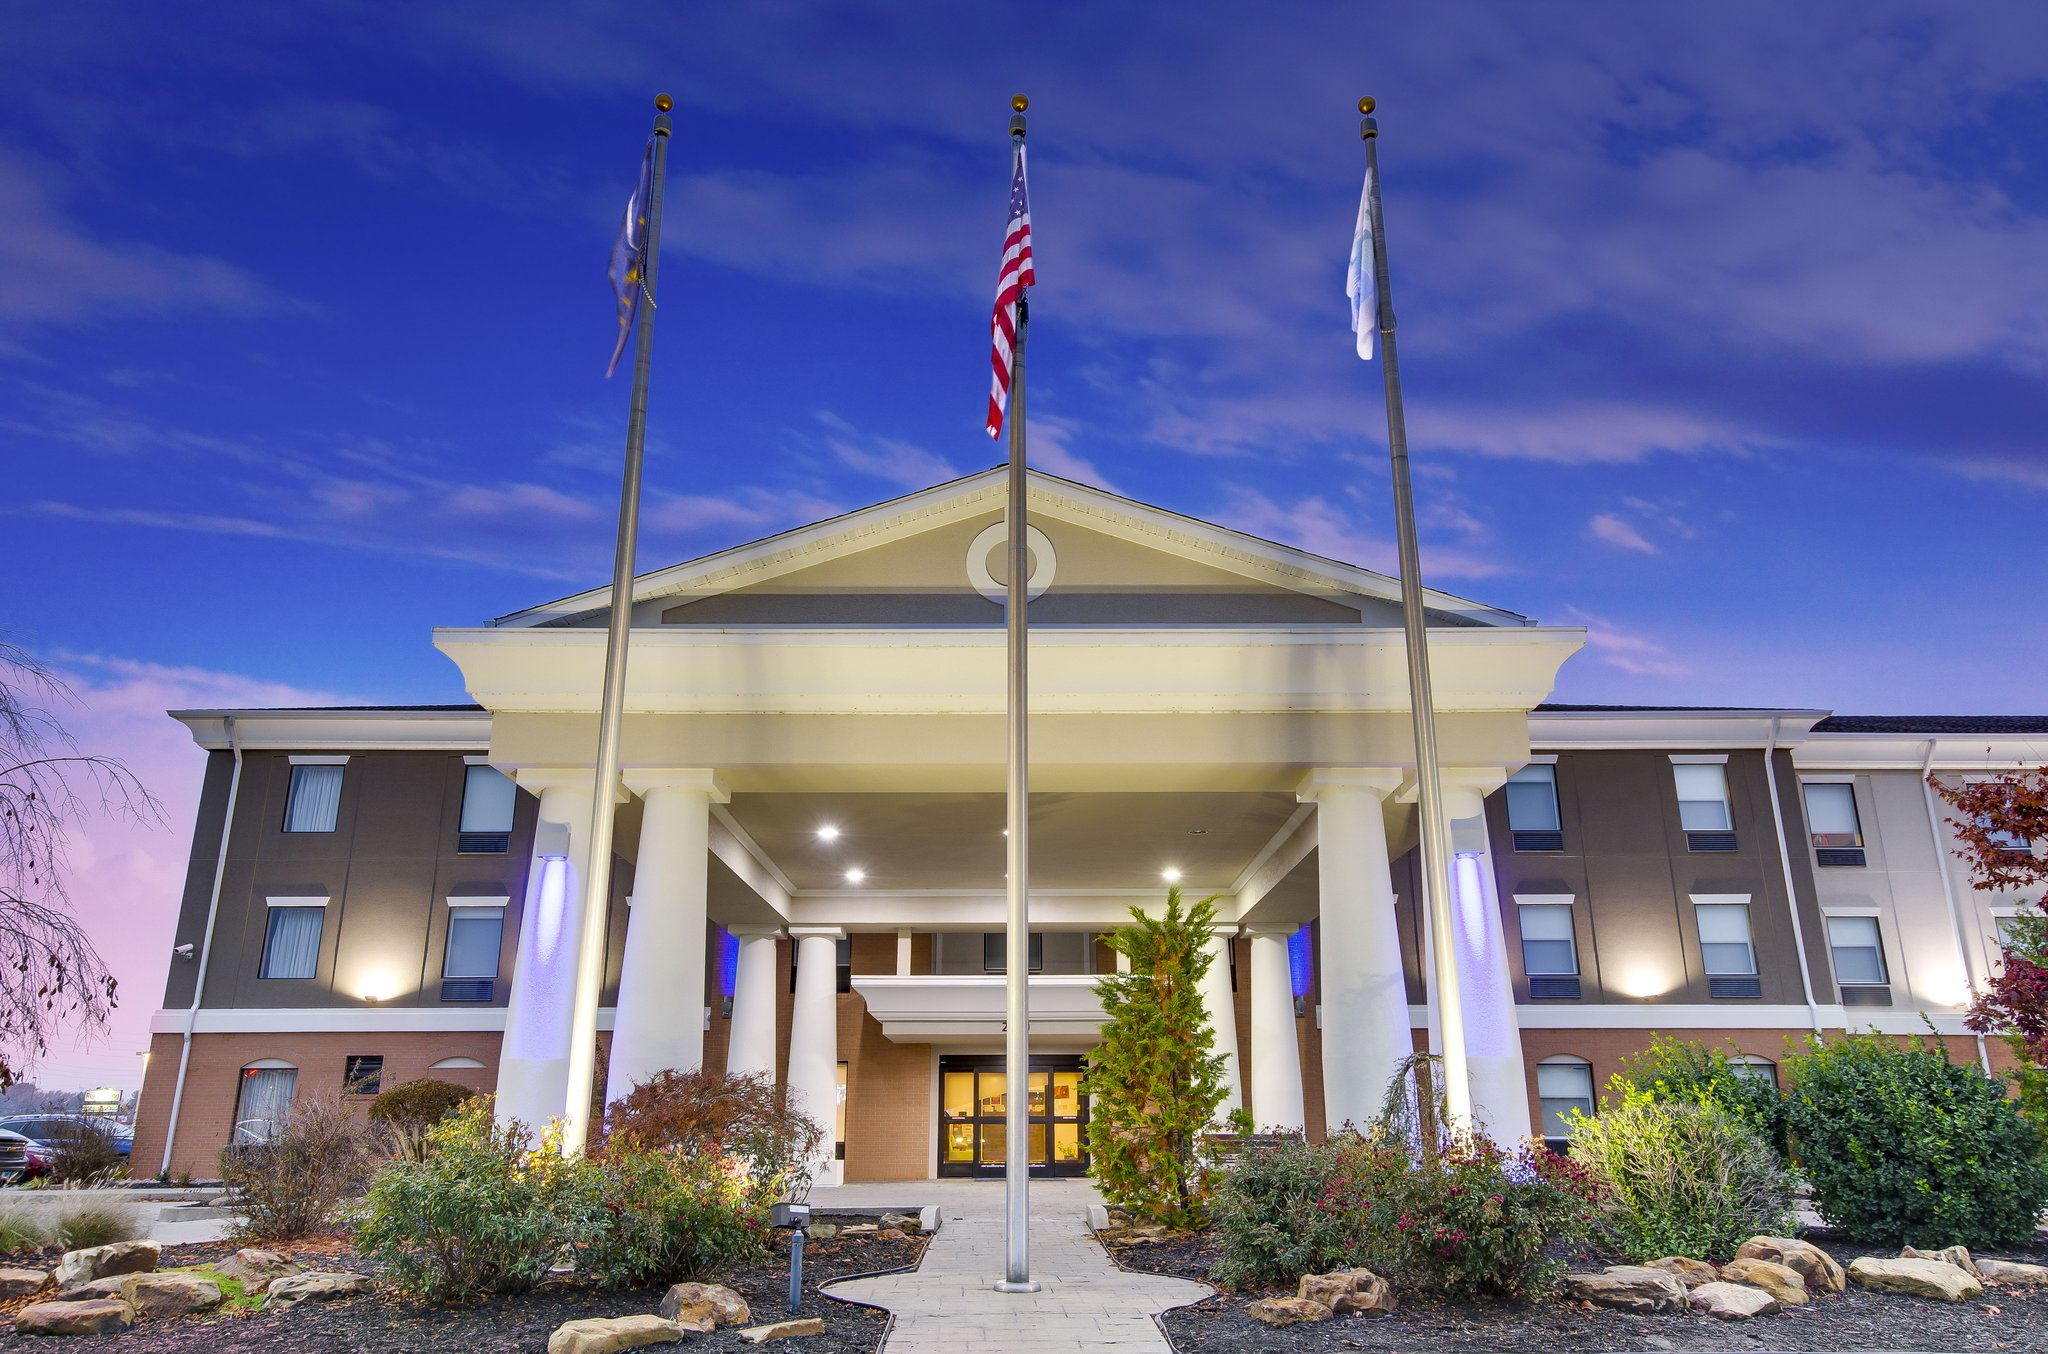 Holiday Inn Express Vincennes Neighborhood Local Information